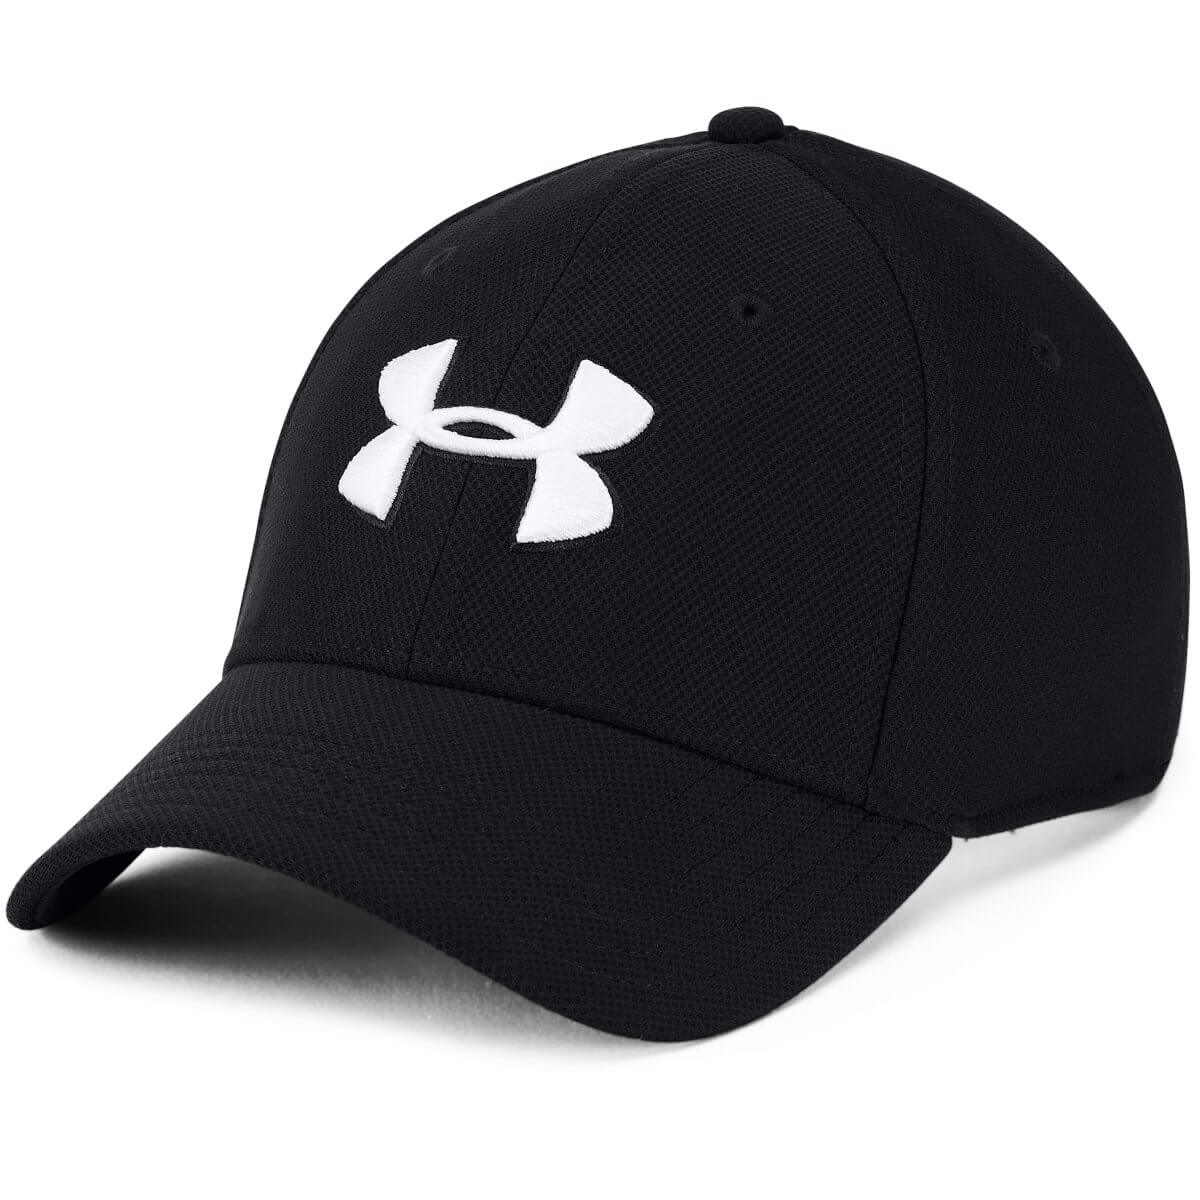 Under Armour Šiltovka Men's Blitzing 3.0 Cap BlackWhite ML